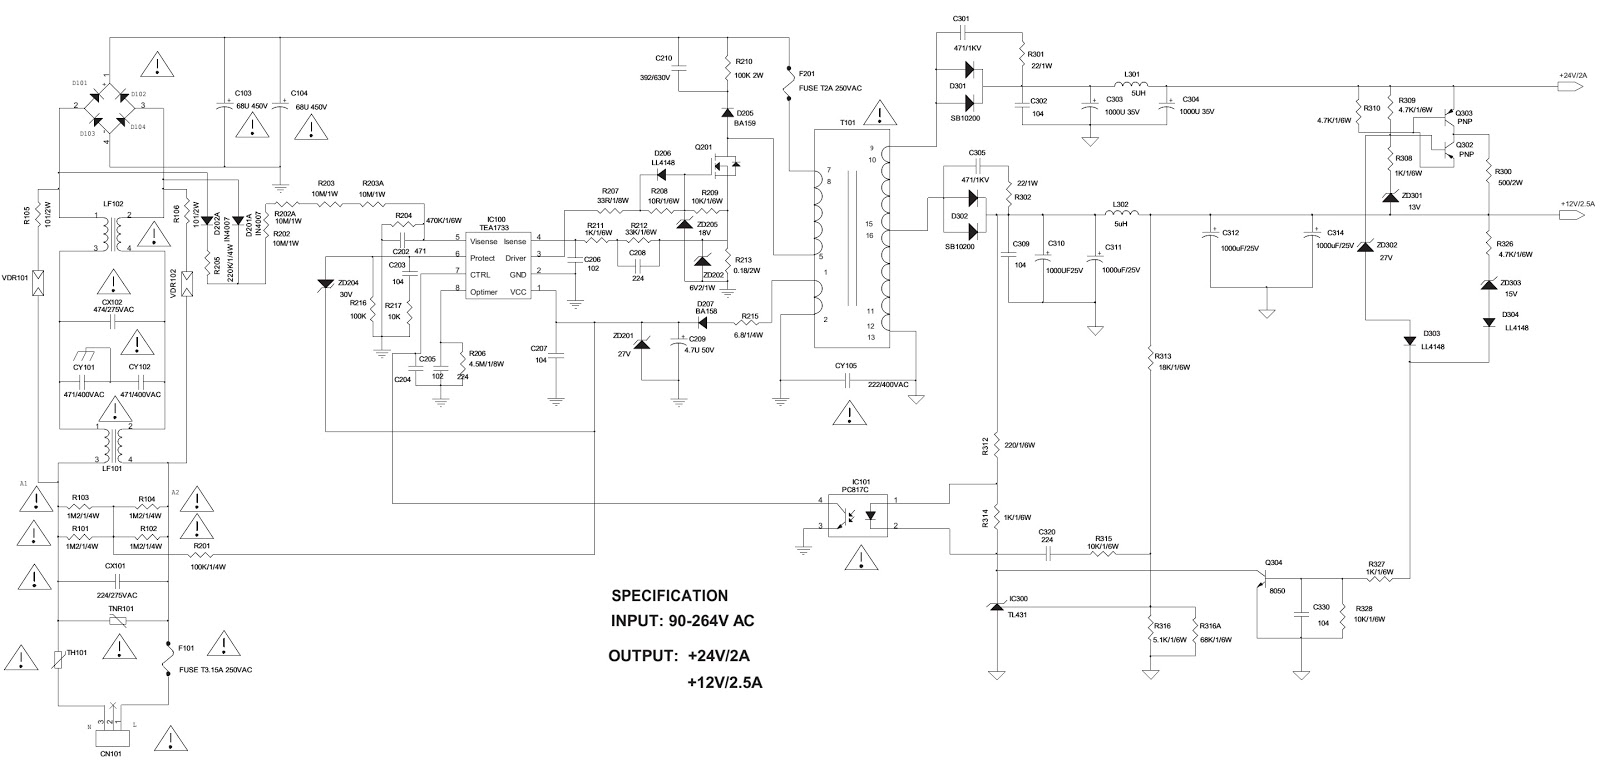 FIG 1 toshiba le3273 toshiba le3973 led lcd tv smps circuit diagram toshiba motor wiring diagram at mifinder.co